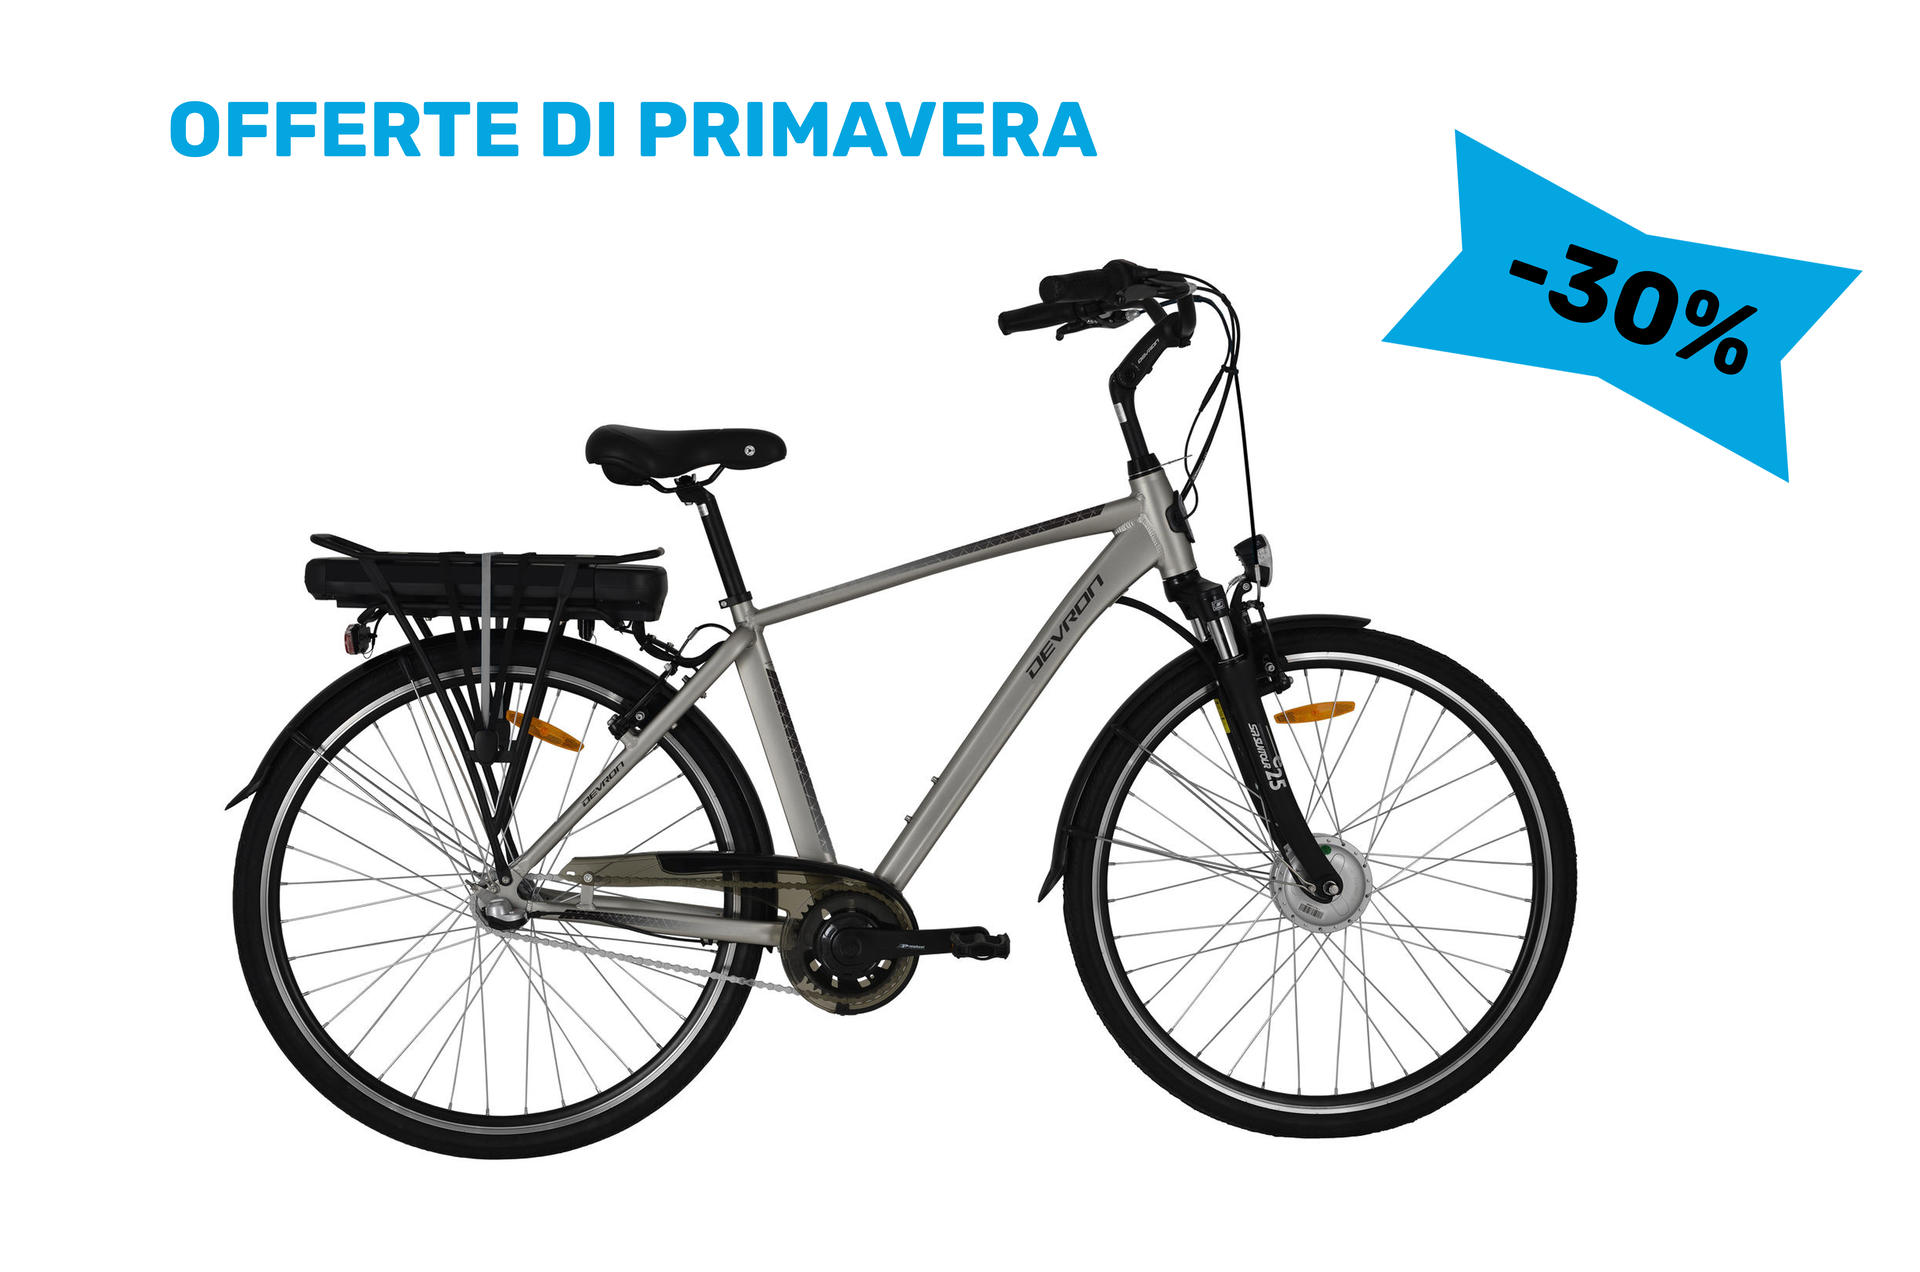 Bicicletta elettrica city bike Devron 28121 490mm Champagne -28